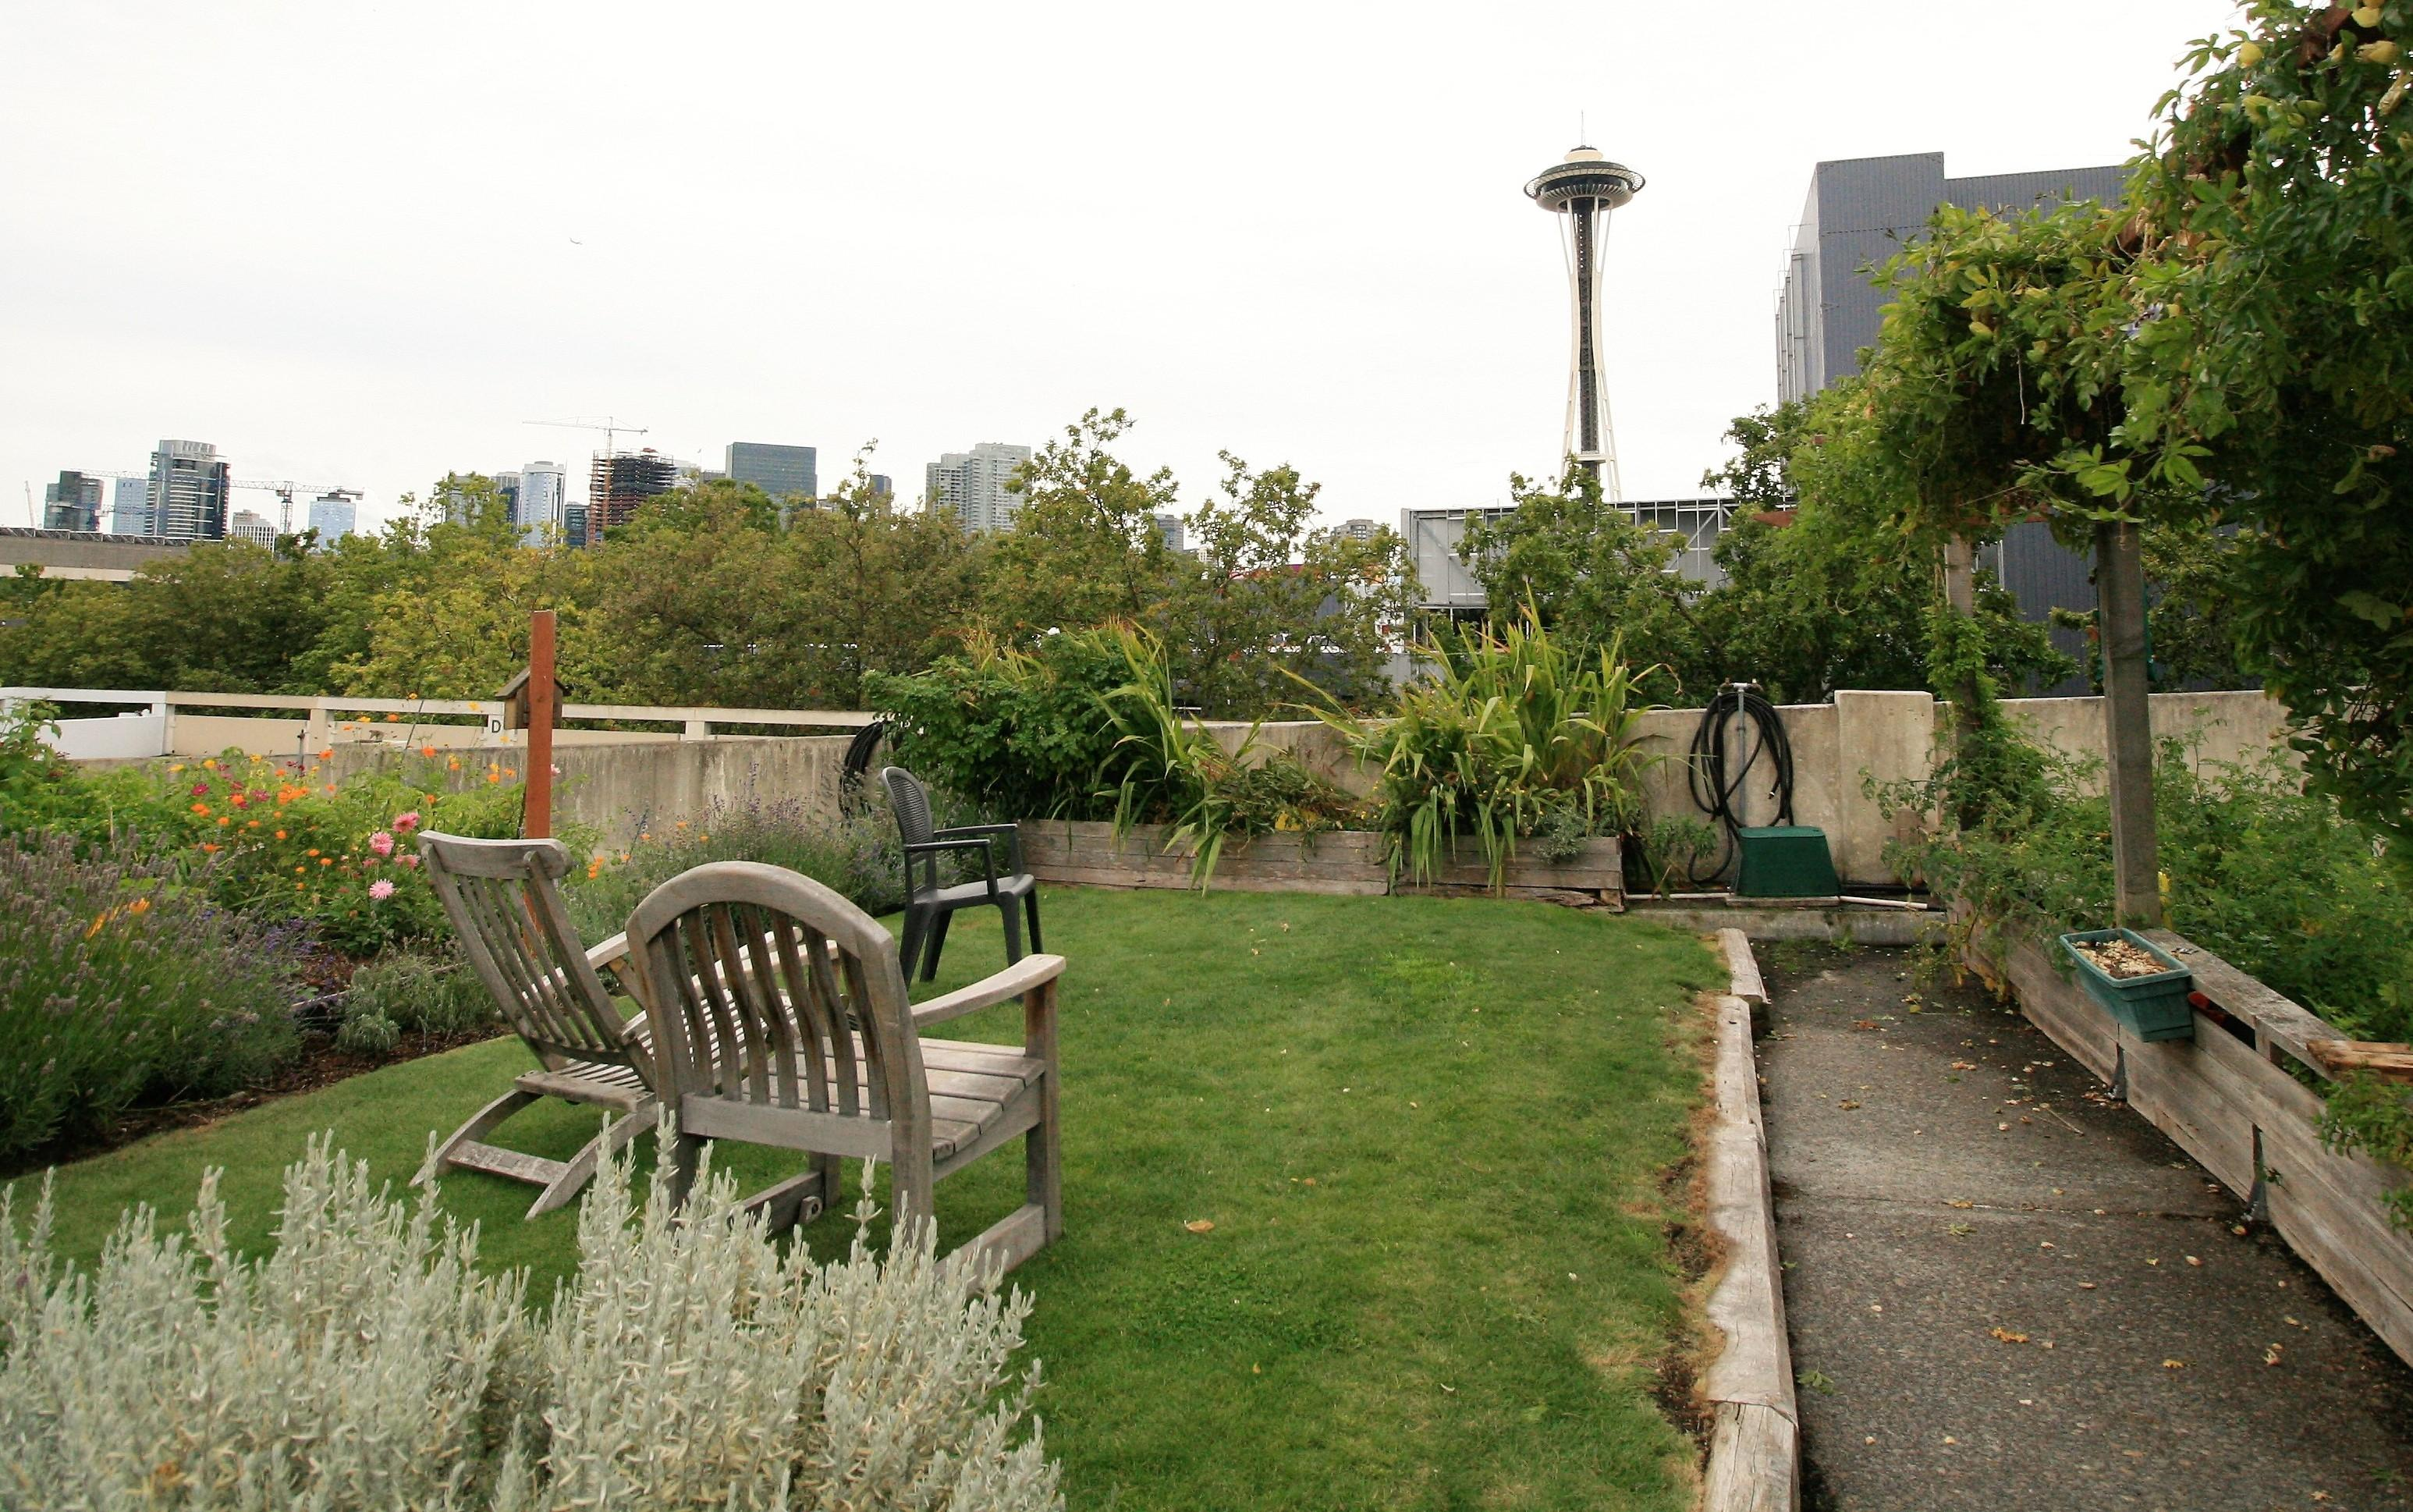 The UpGarden is part of Seattle's P-Patch Community Garden program. (Image: Elizabeth Blanton / Seattle Refined)